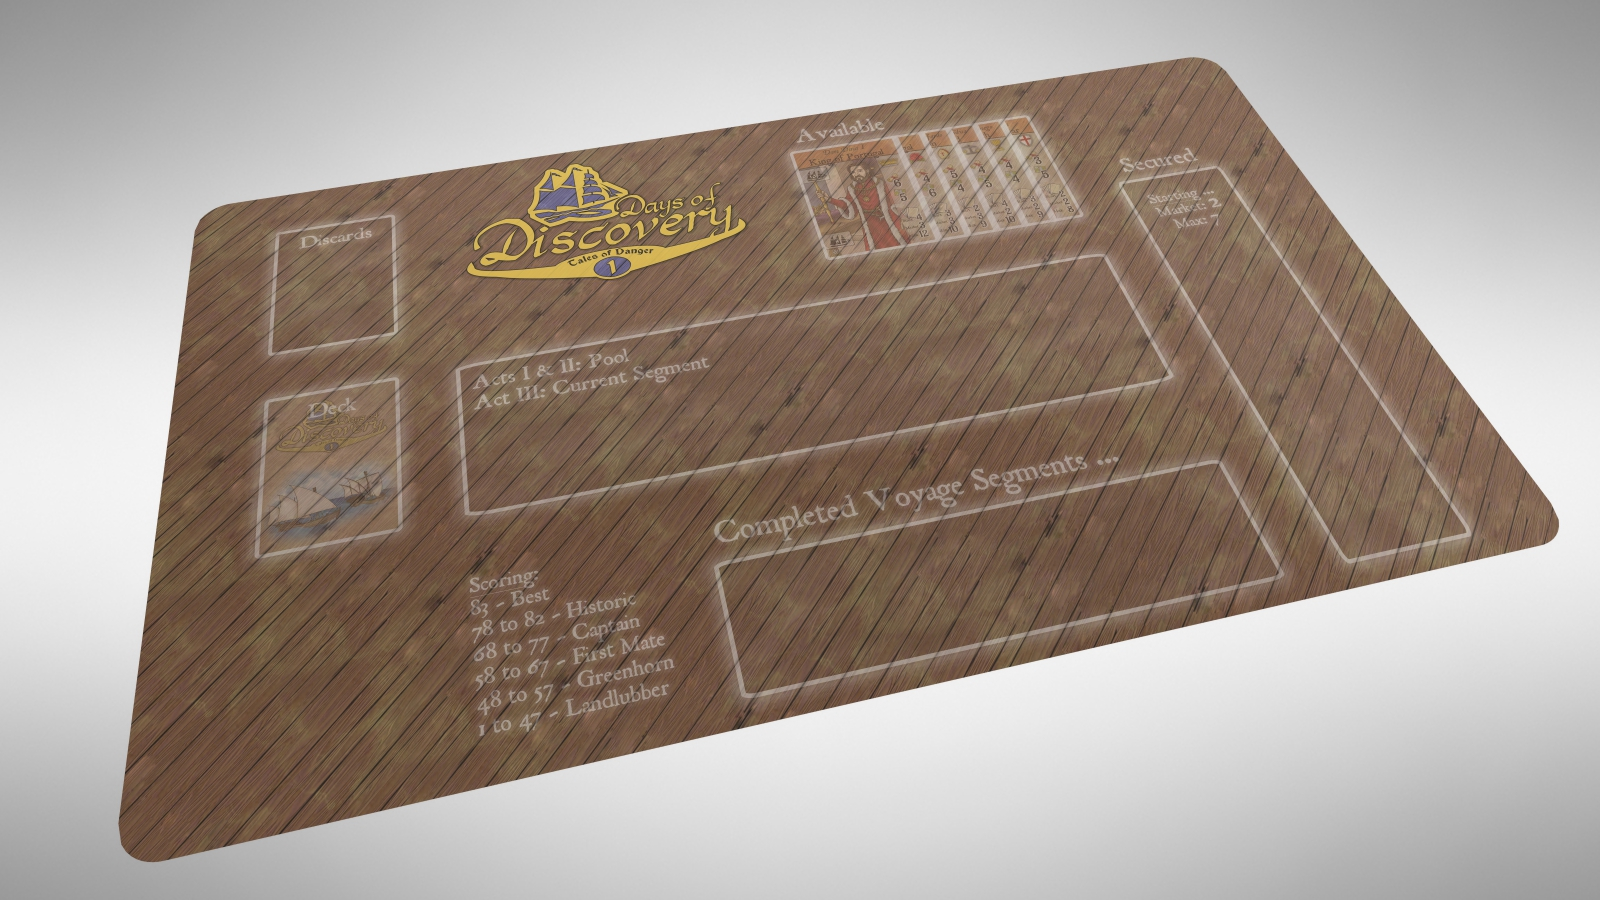 NEW!! – Neoprene Solo-Play Mat for Days of Discovery – $19.99